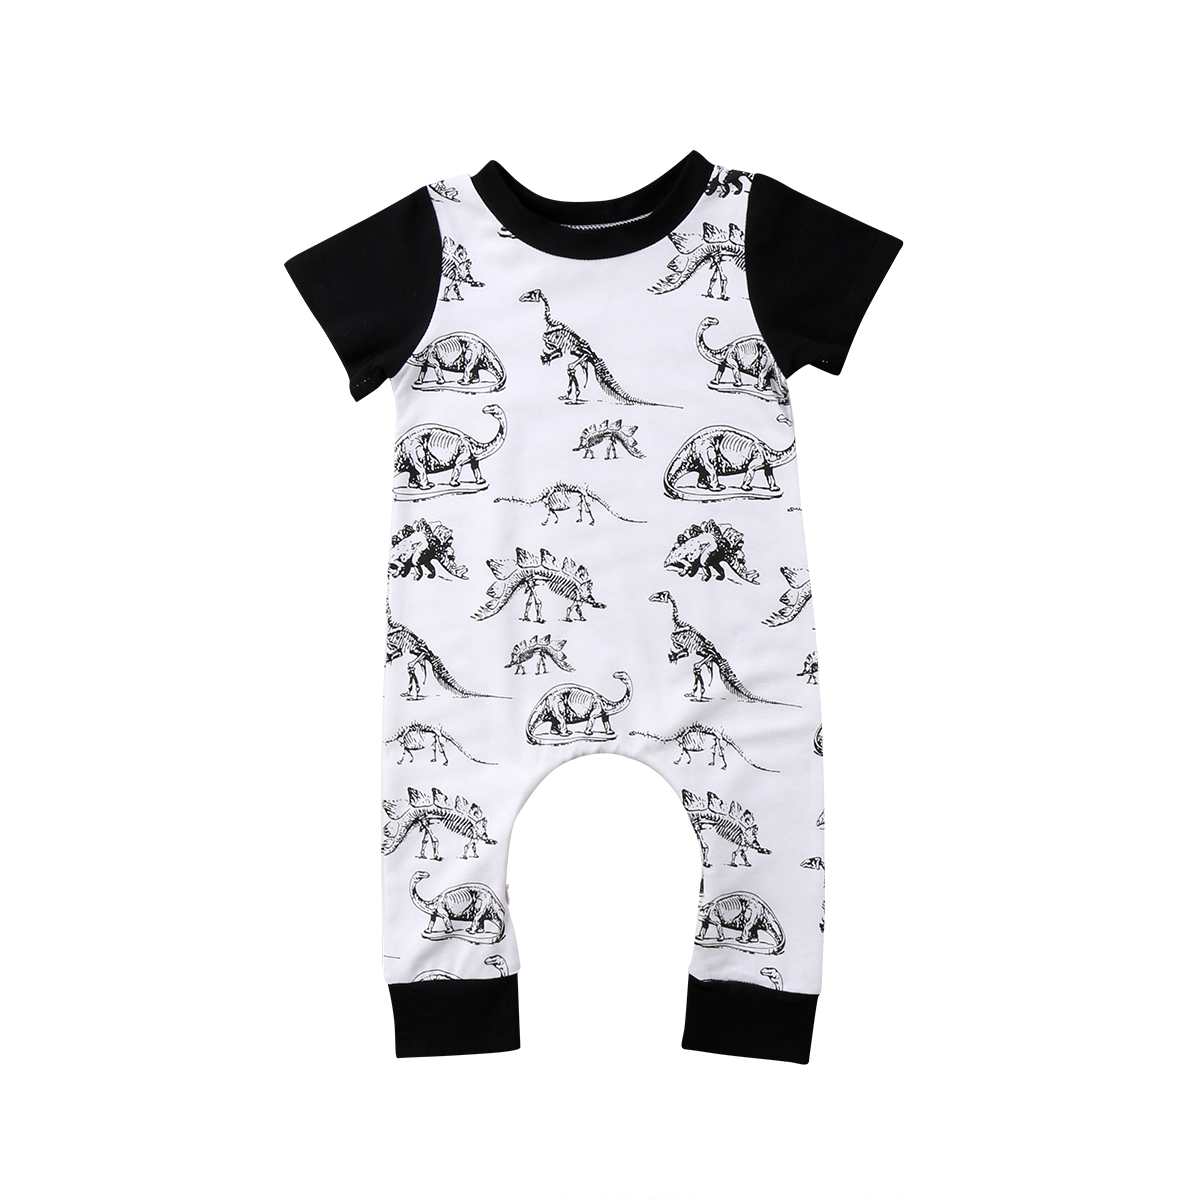 Bodysuits & One-pieces Newborn Toddler Infant Kids Baby Boy Girl Short Sleeve Animal Print Rompers Long Pant Jumpsuit Boys Girls Summer Cotton Outfits Rompers